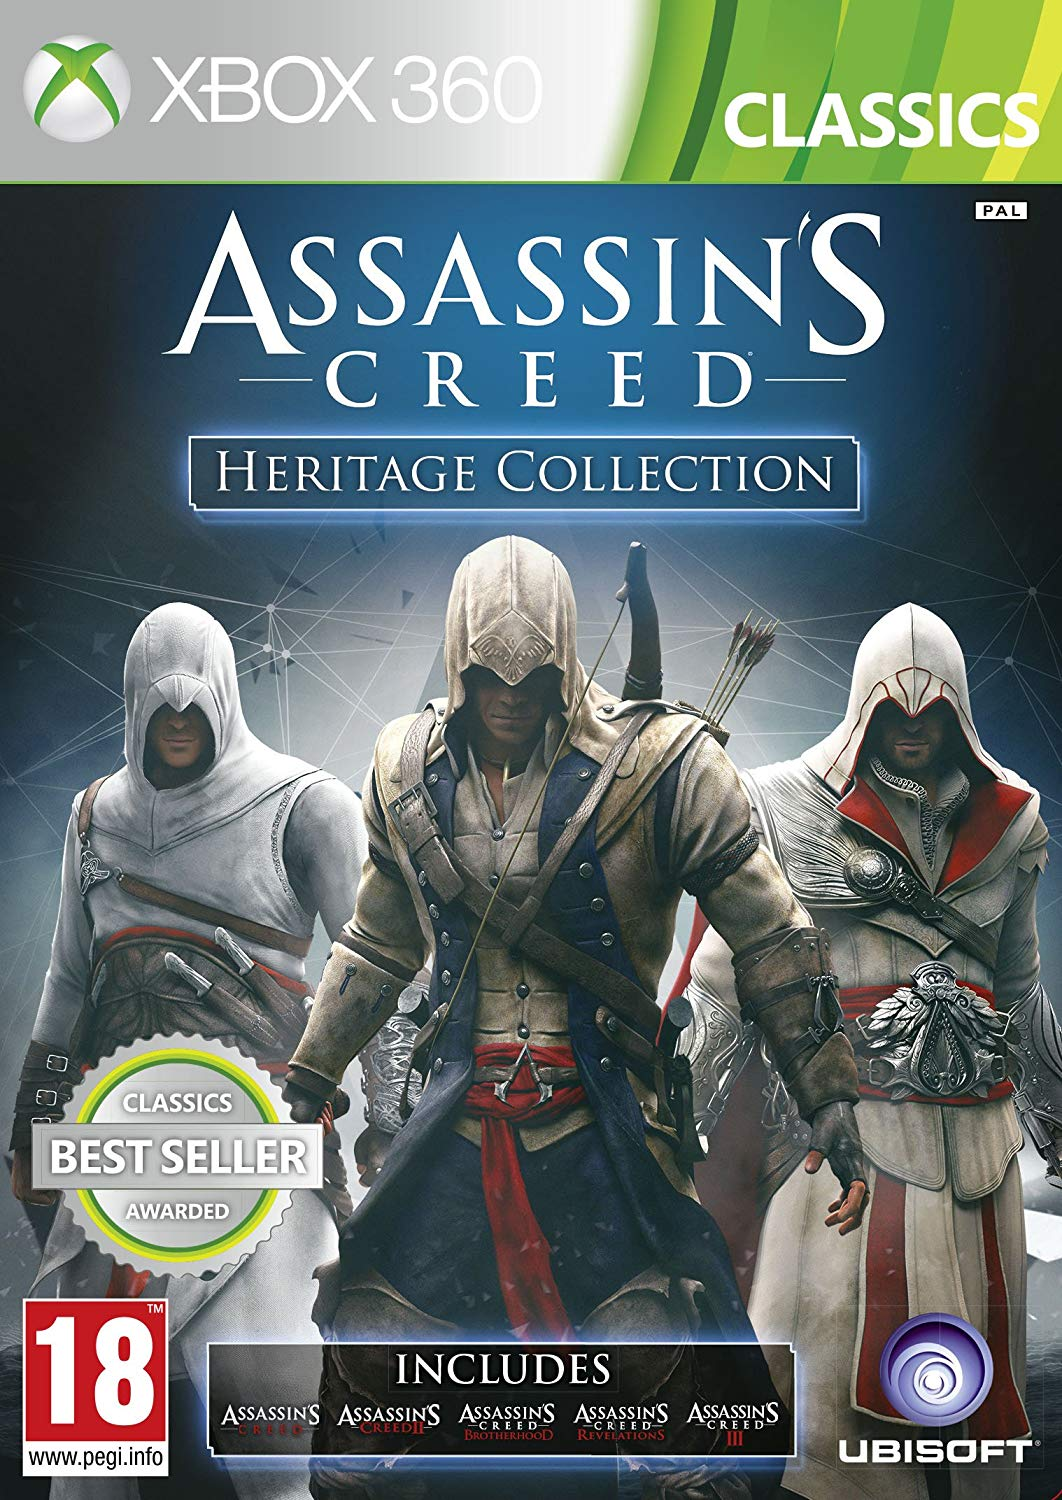 Assassins Creed Heritage Collection